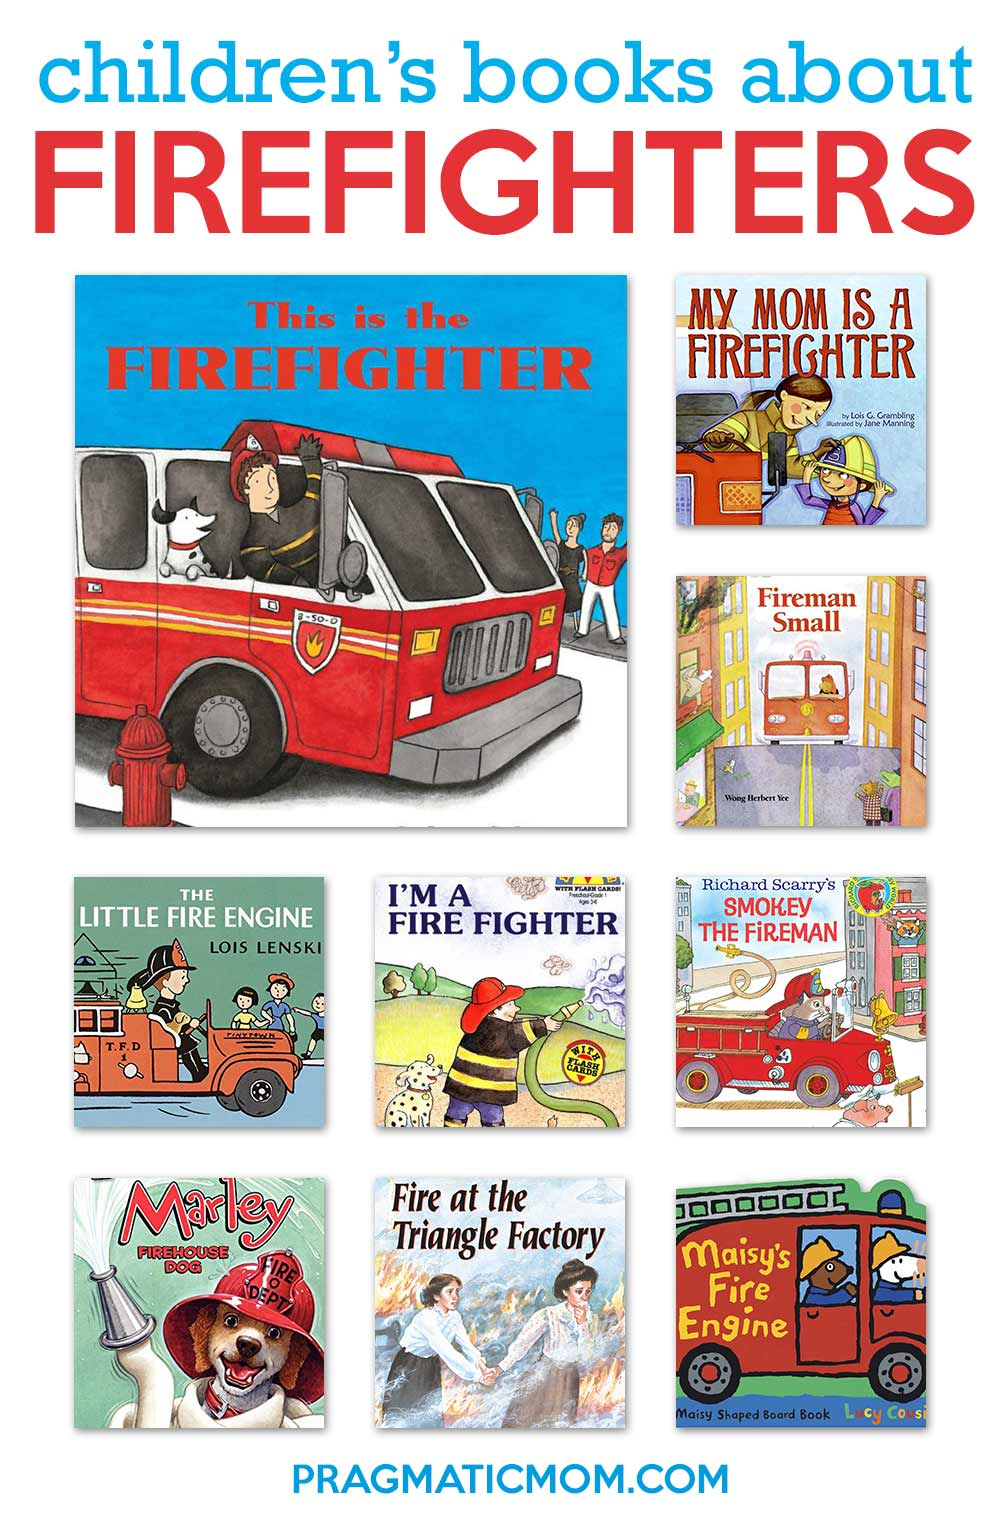 Children's Books about Firefighters